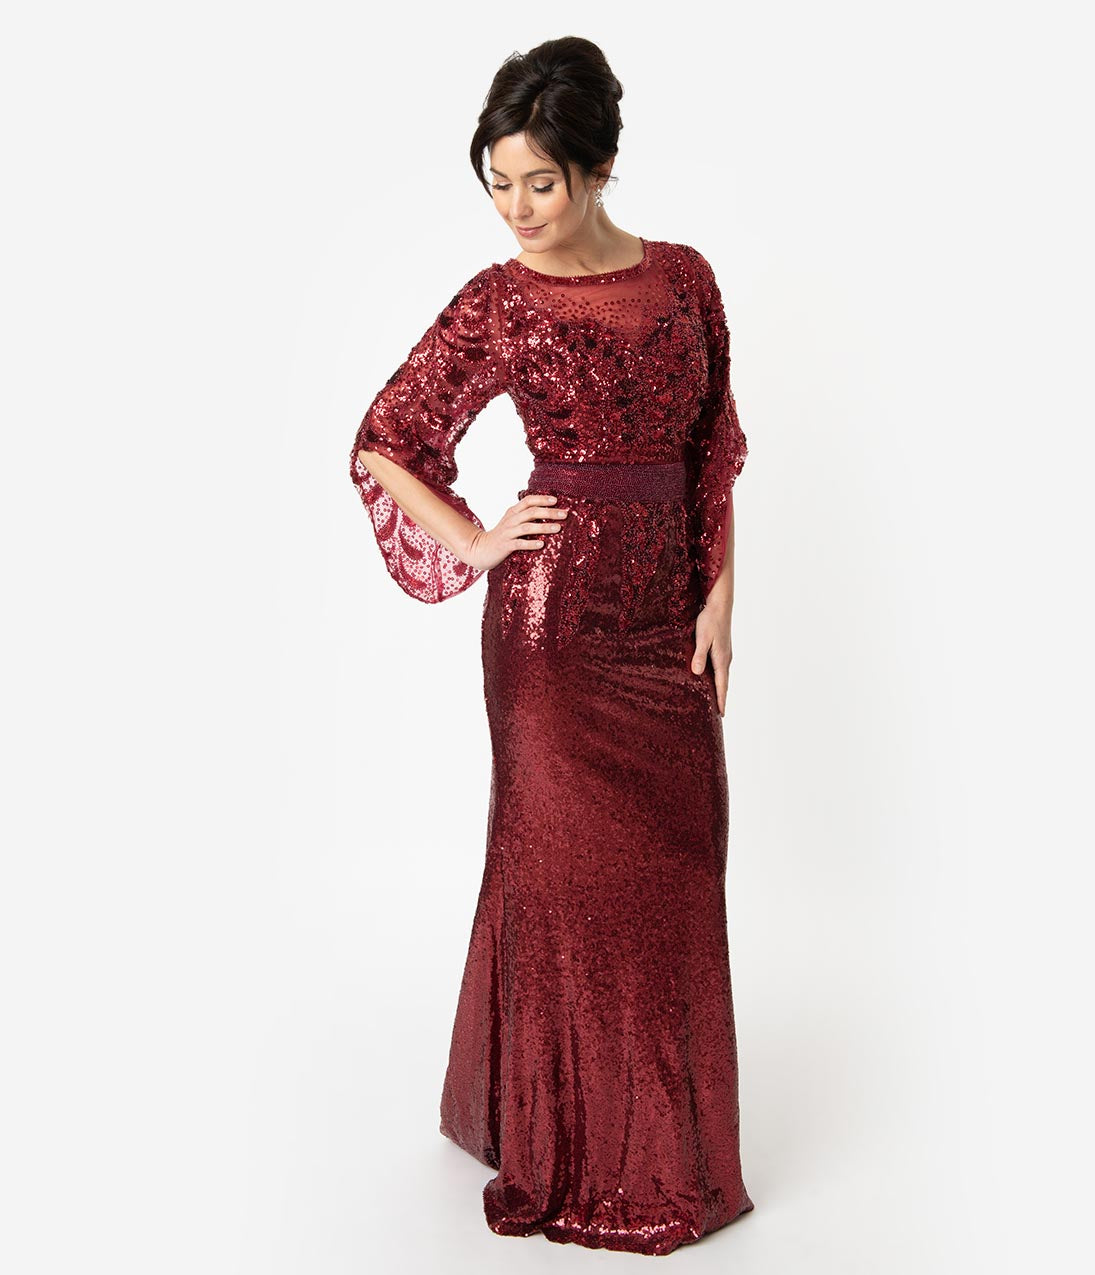 1930s Evening Dresses | Old Hollywood Dress Burgundy Red Sequin Open Bell Sleeved Fitted Gown $240.00 AT vintagedancer.com